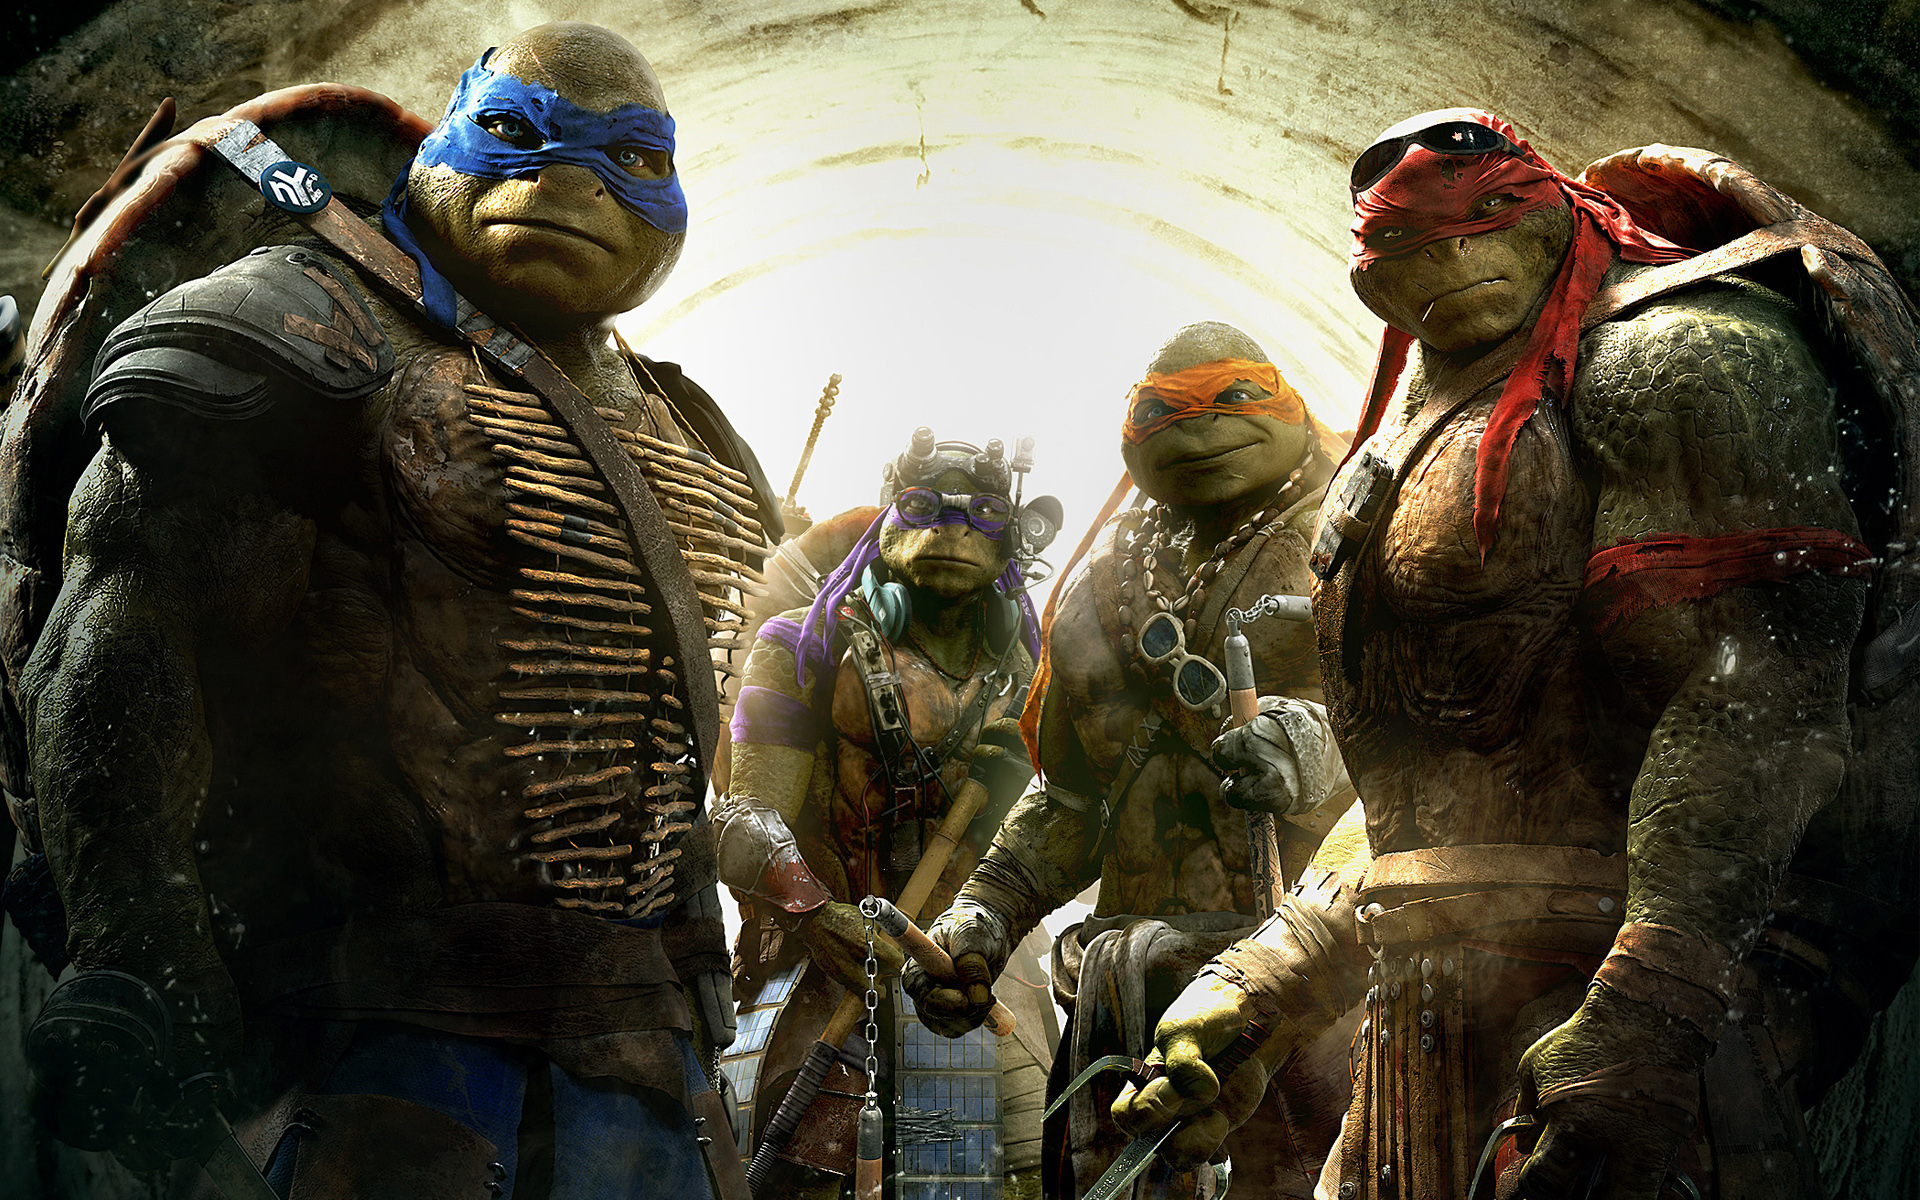 Teenage Mutant Ninja Turtles 2014 2037.89 Kb